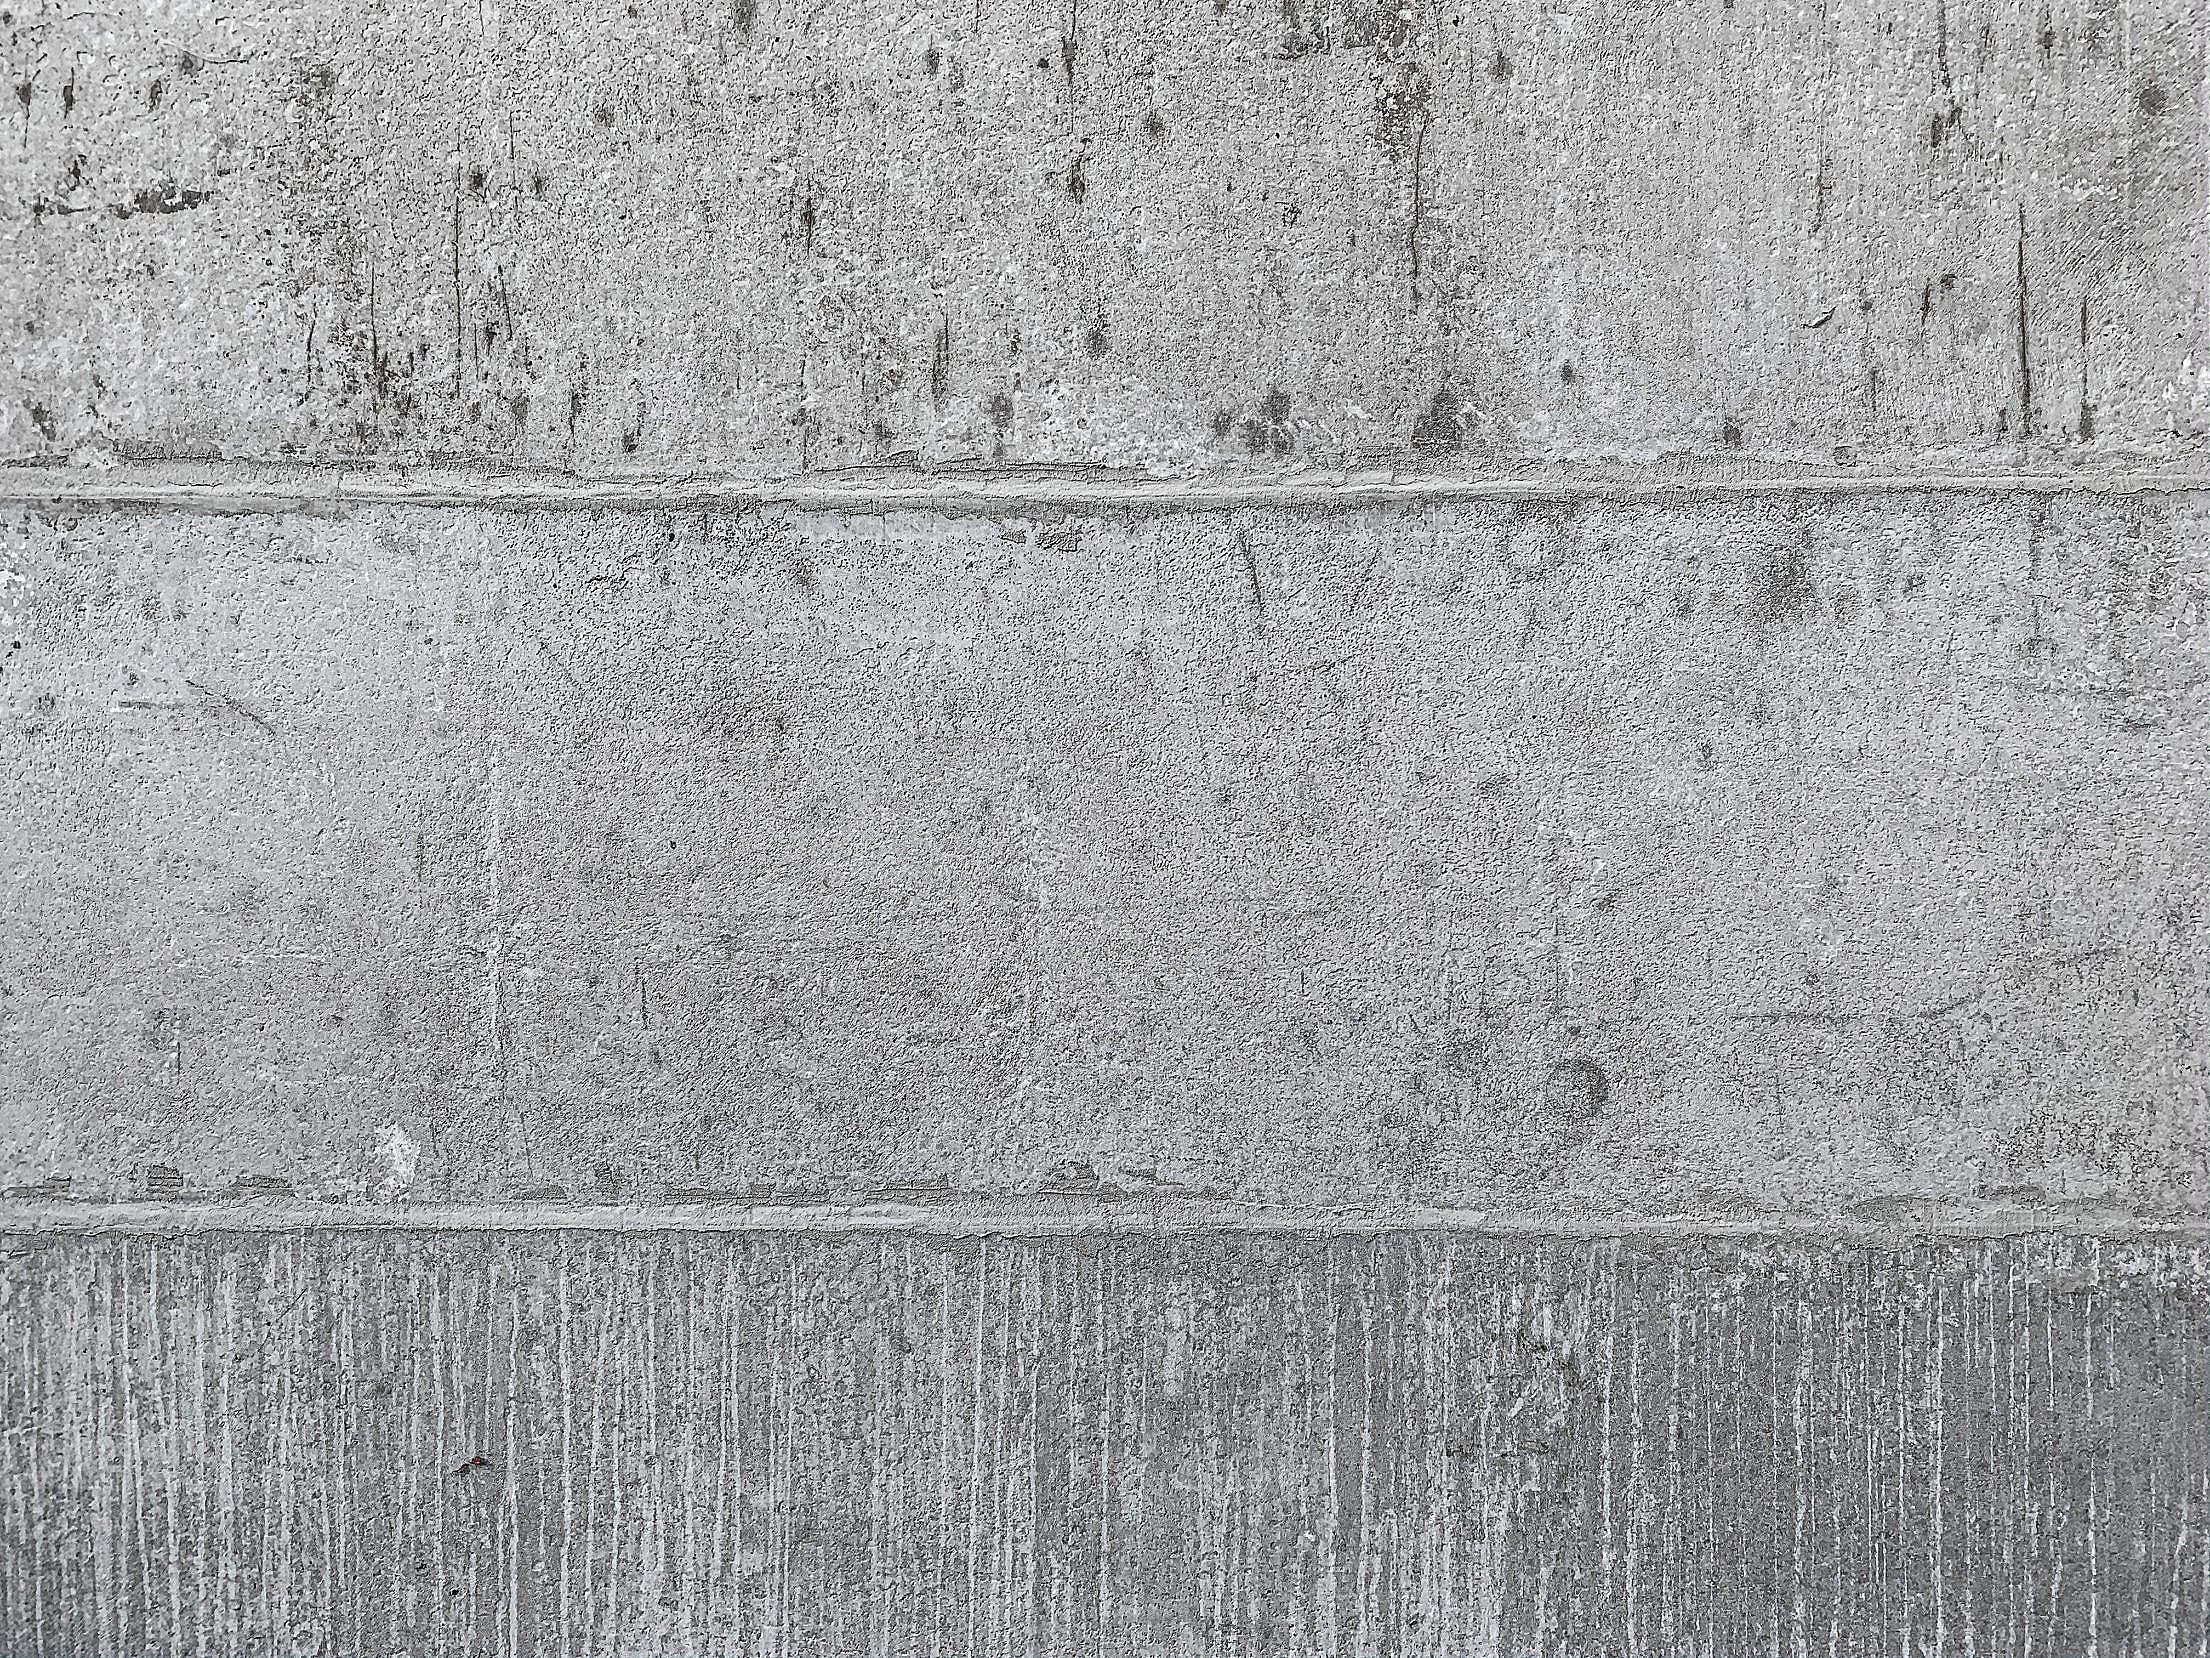 Realistic Concrete Wall Texture Free Stock Photo